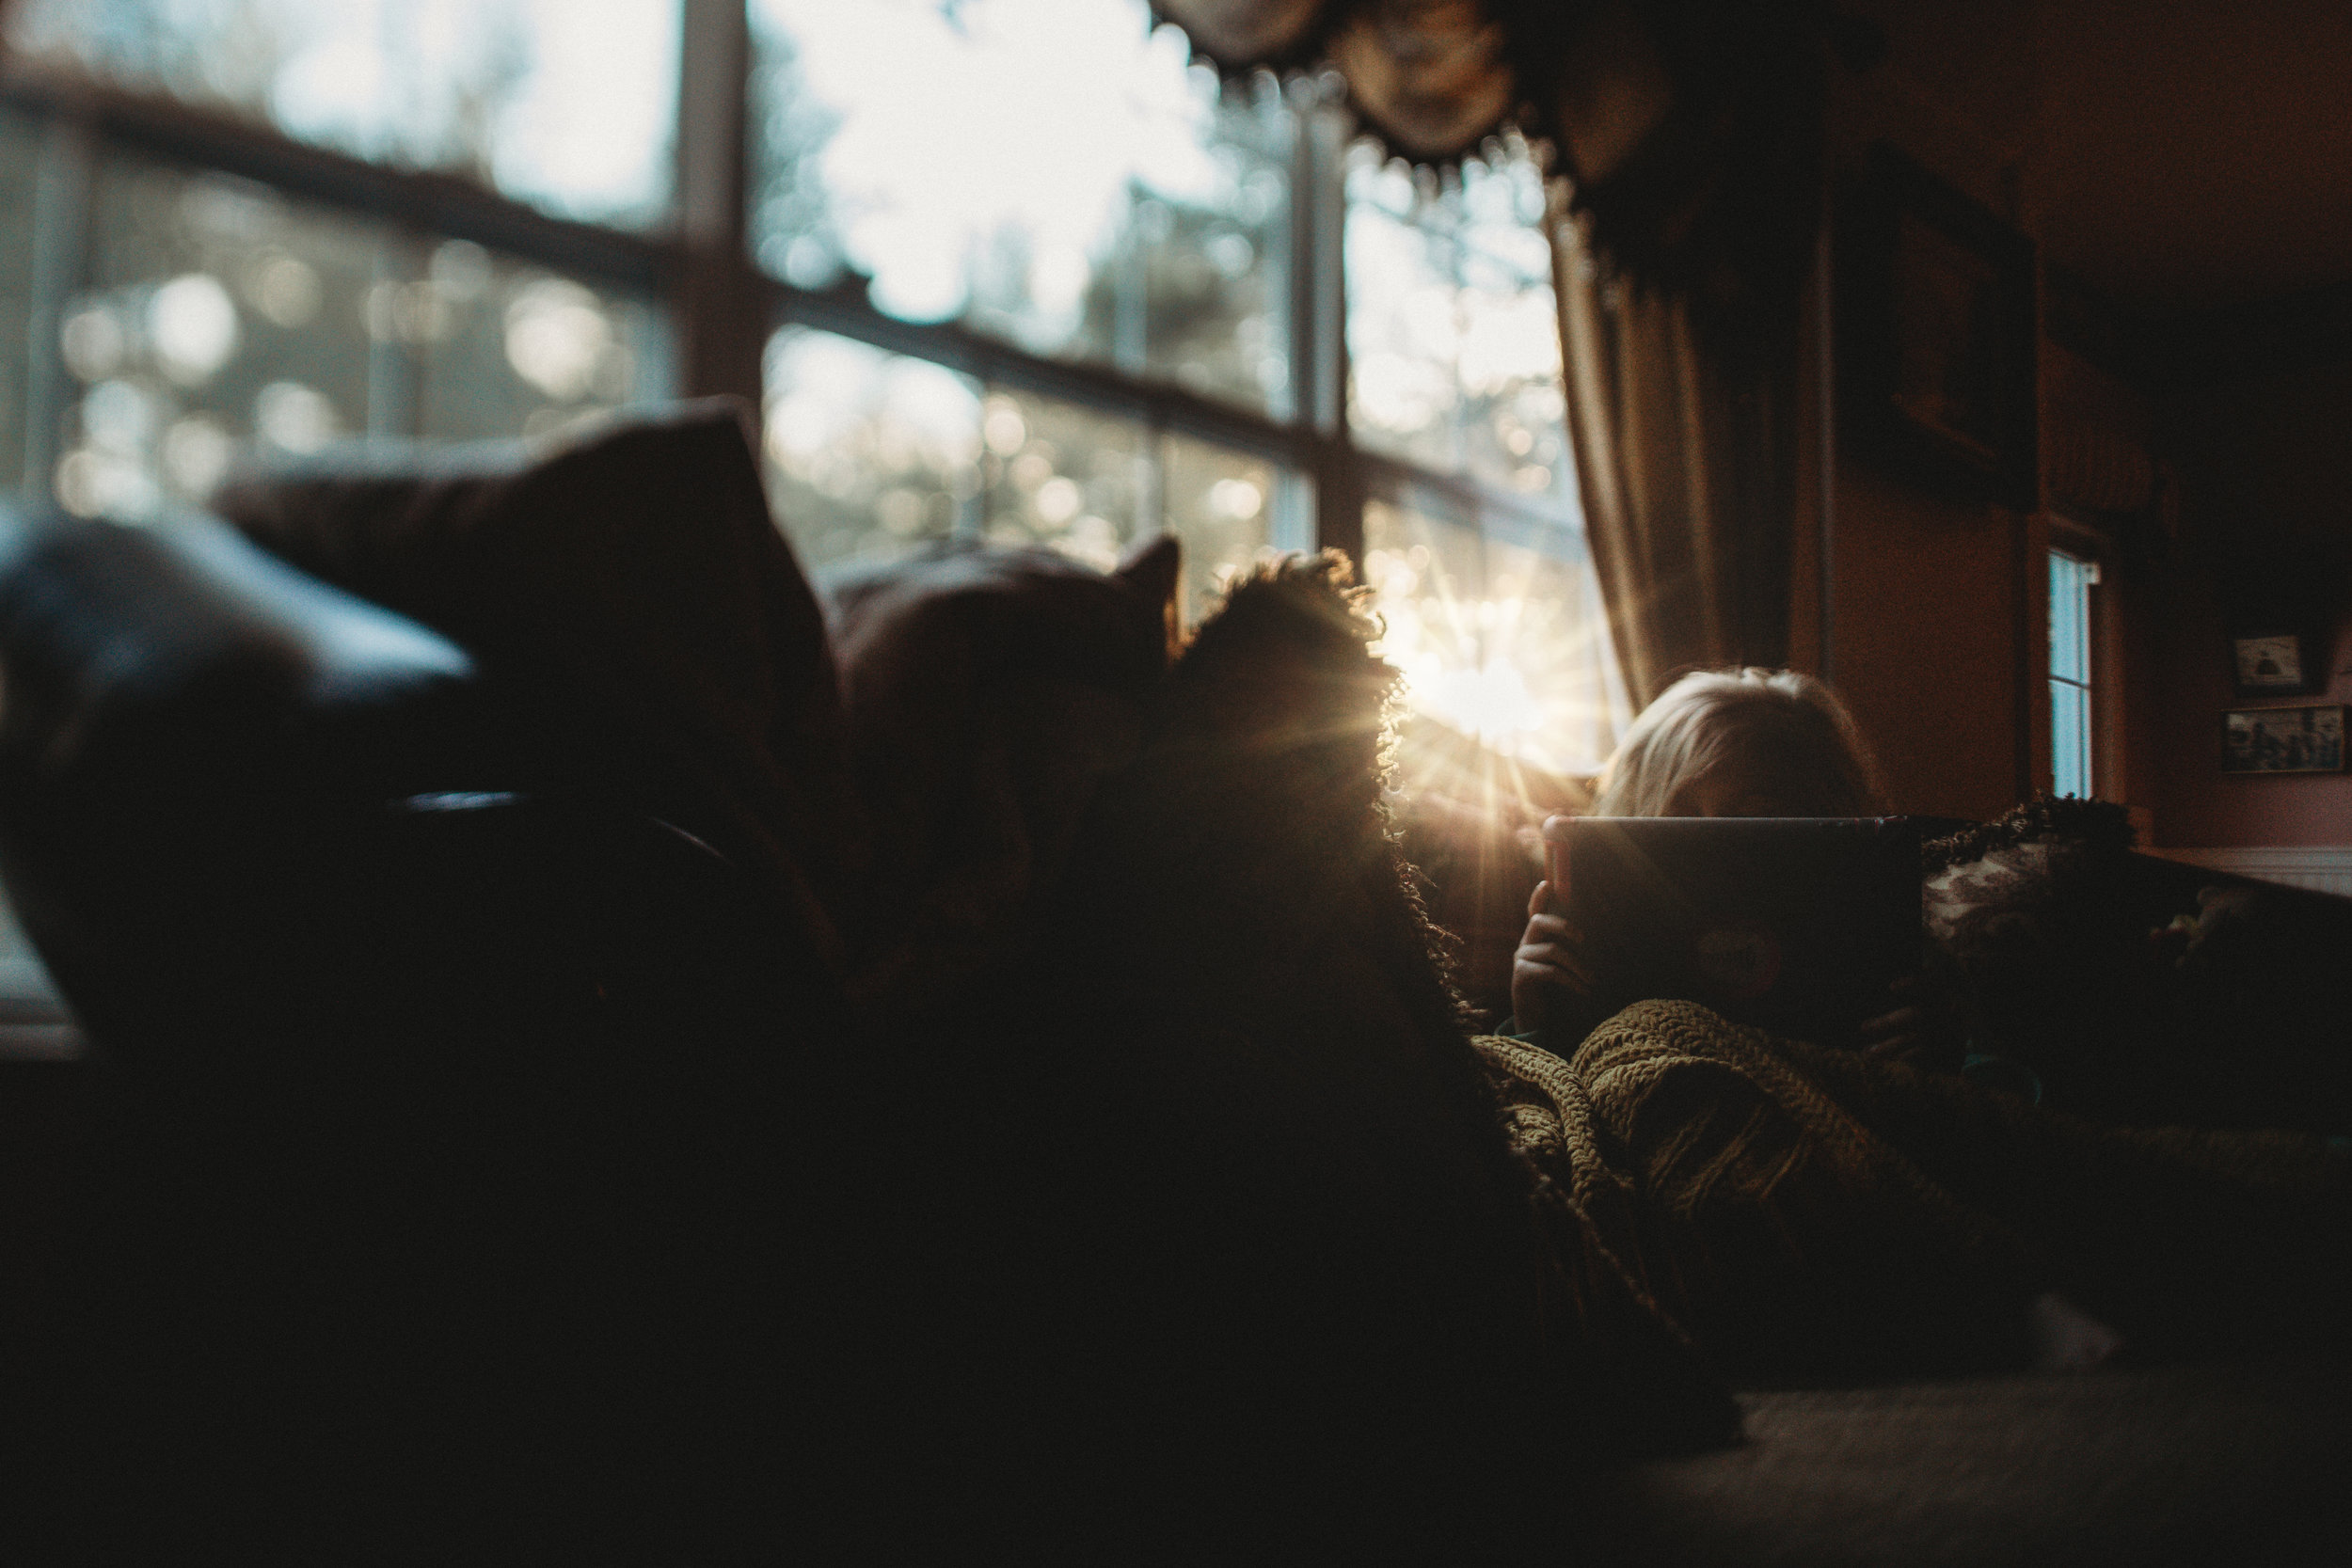 hello-olivia-photography-long-island-photographer-lifestyle-suffolk-flare-sun-couch-living-room.jpg